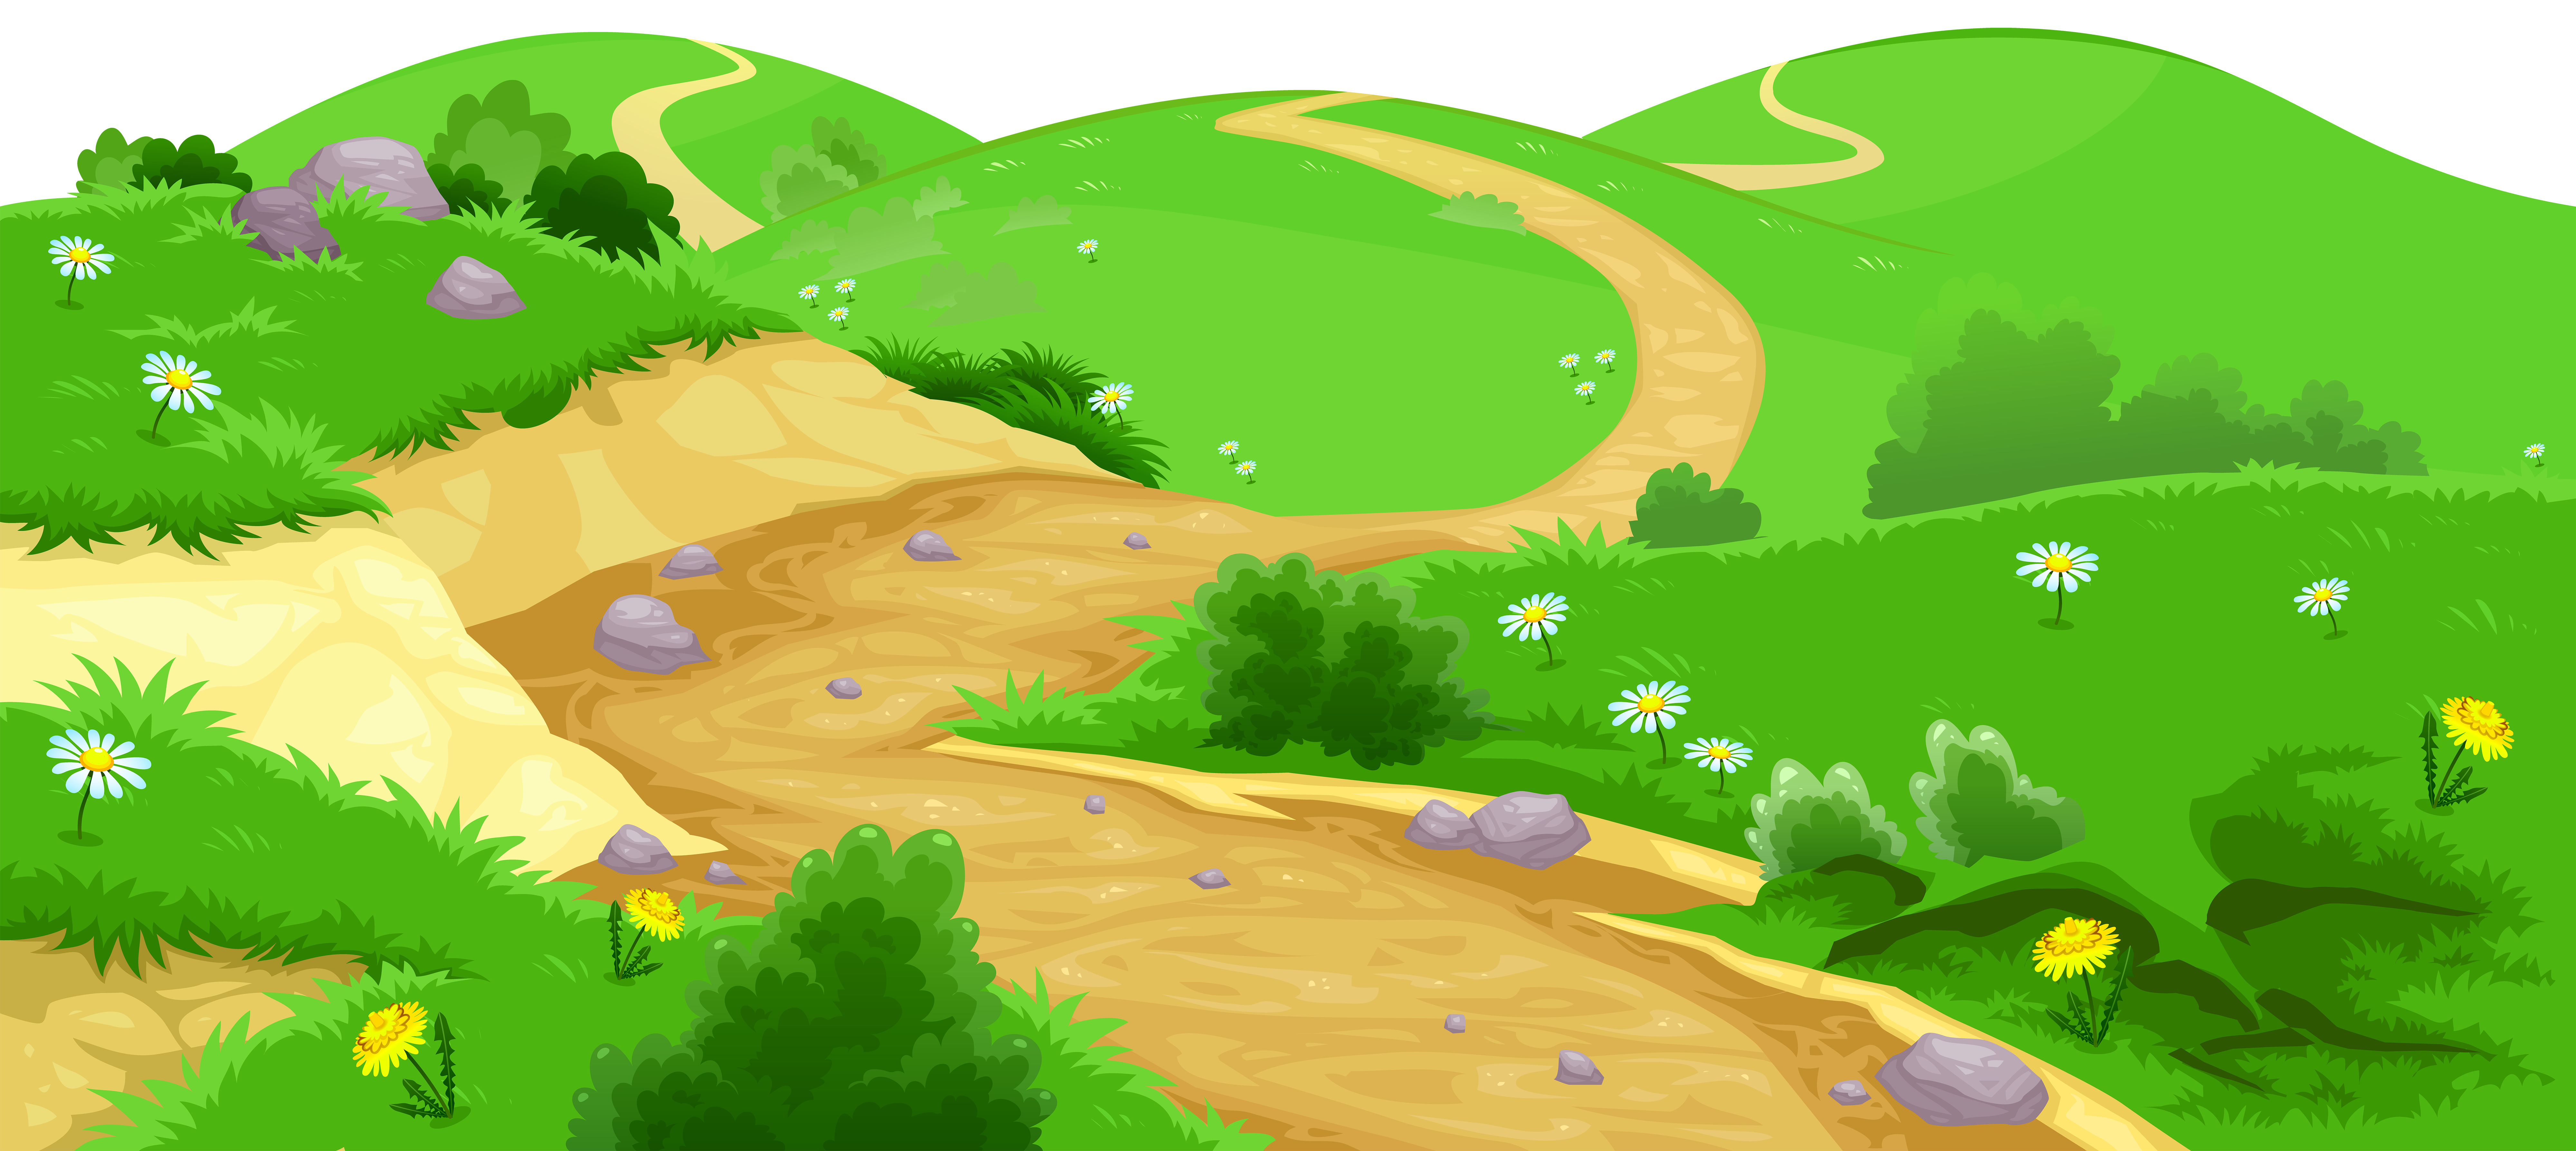 Valley Ground Transparent Png Image Gallery Yopriceville High Quality Images And Transparent Png Free Clipart Png Images Free Clip Art Image